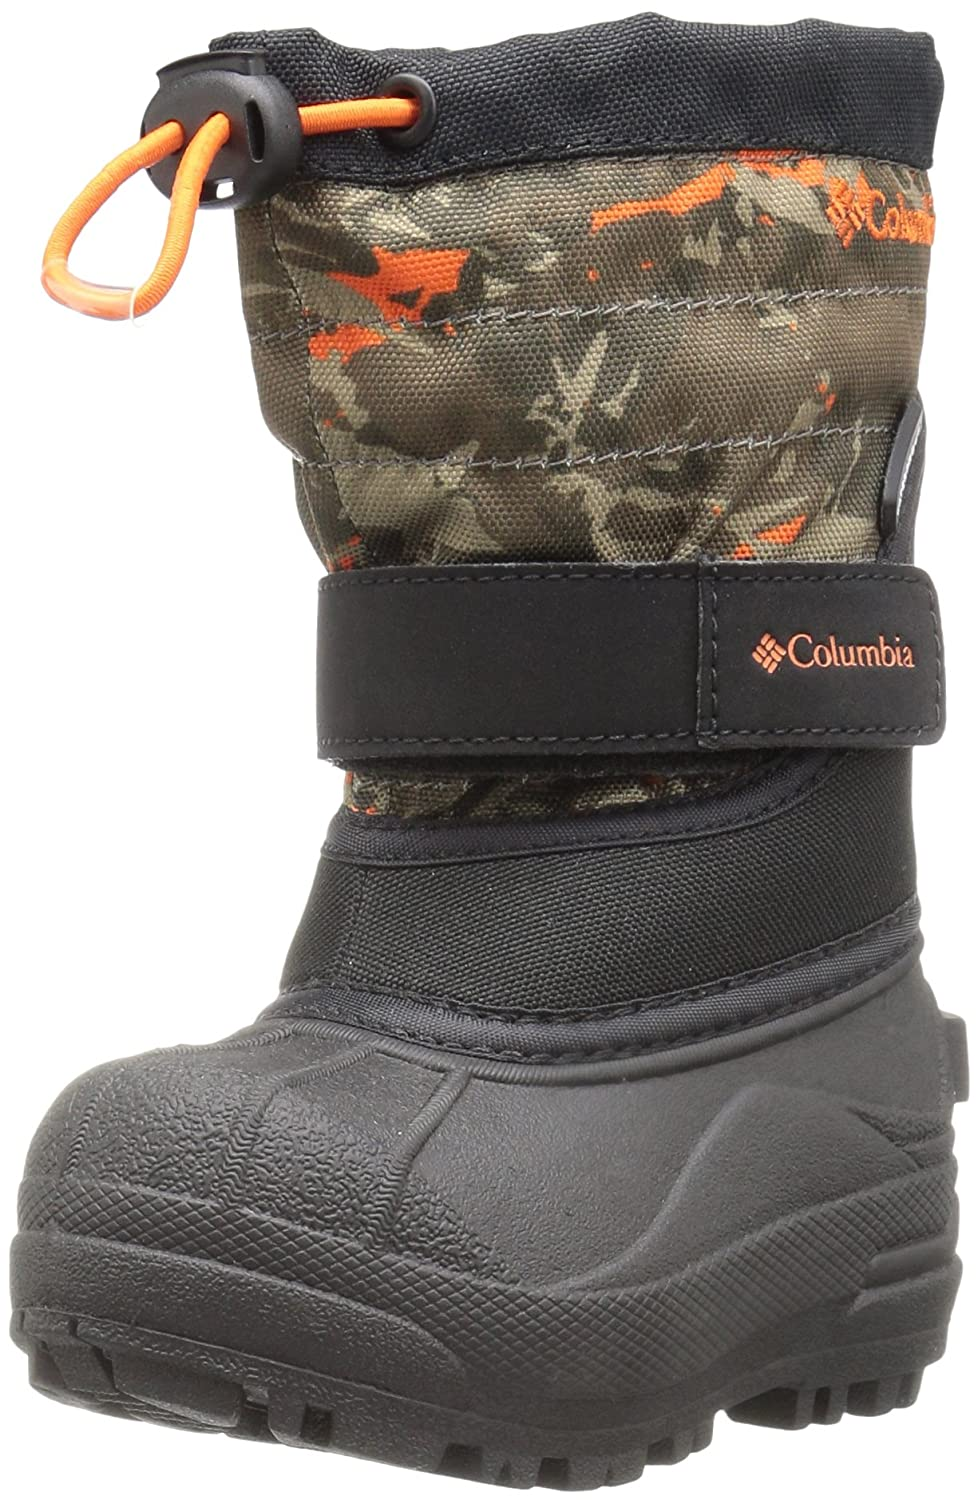 Columbia Kids' Toddler Powderbug Plus II Print Snow Boot 1637883